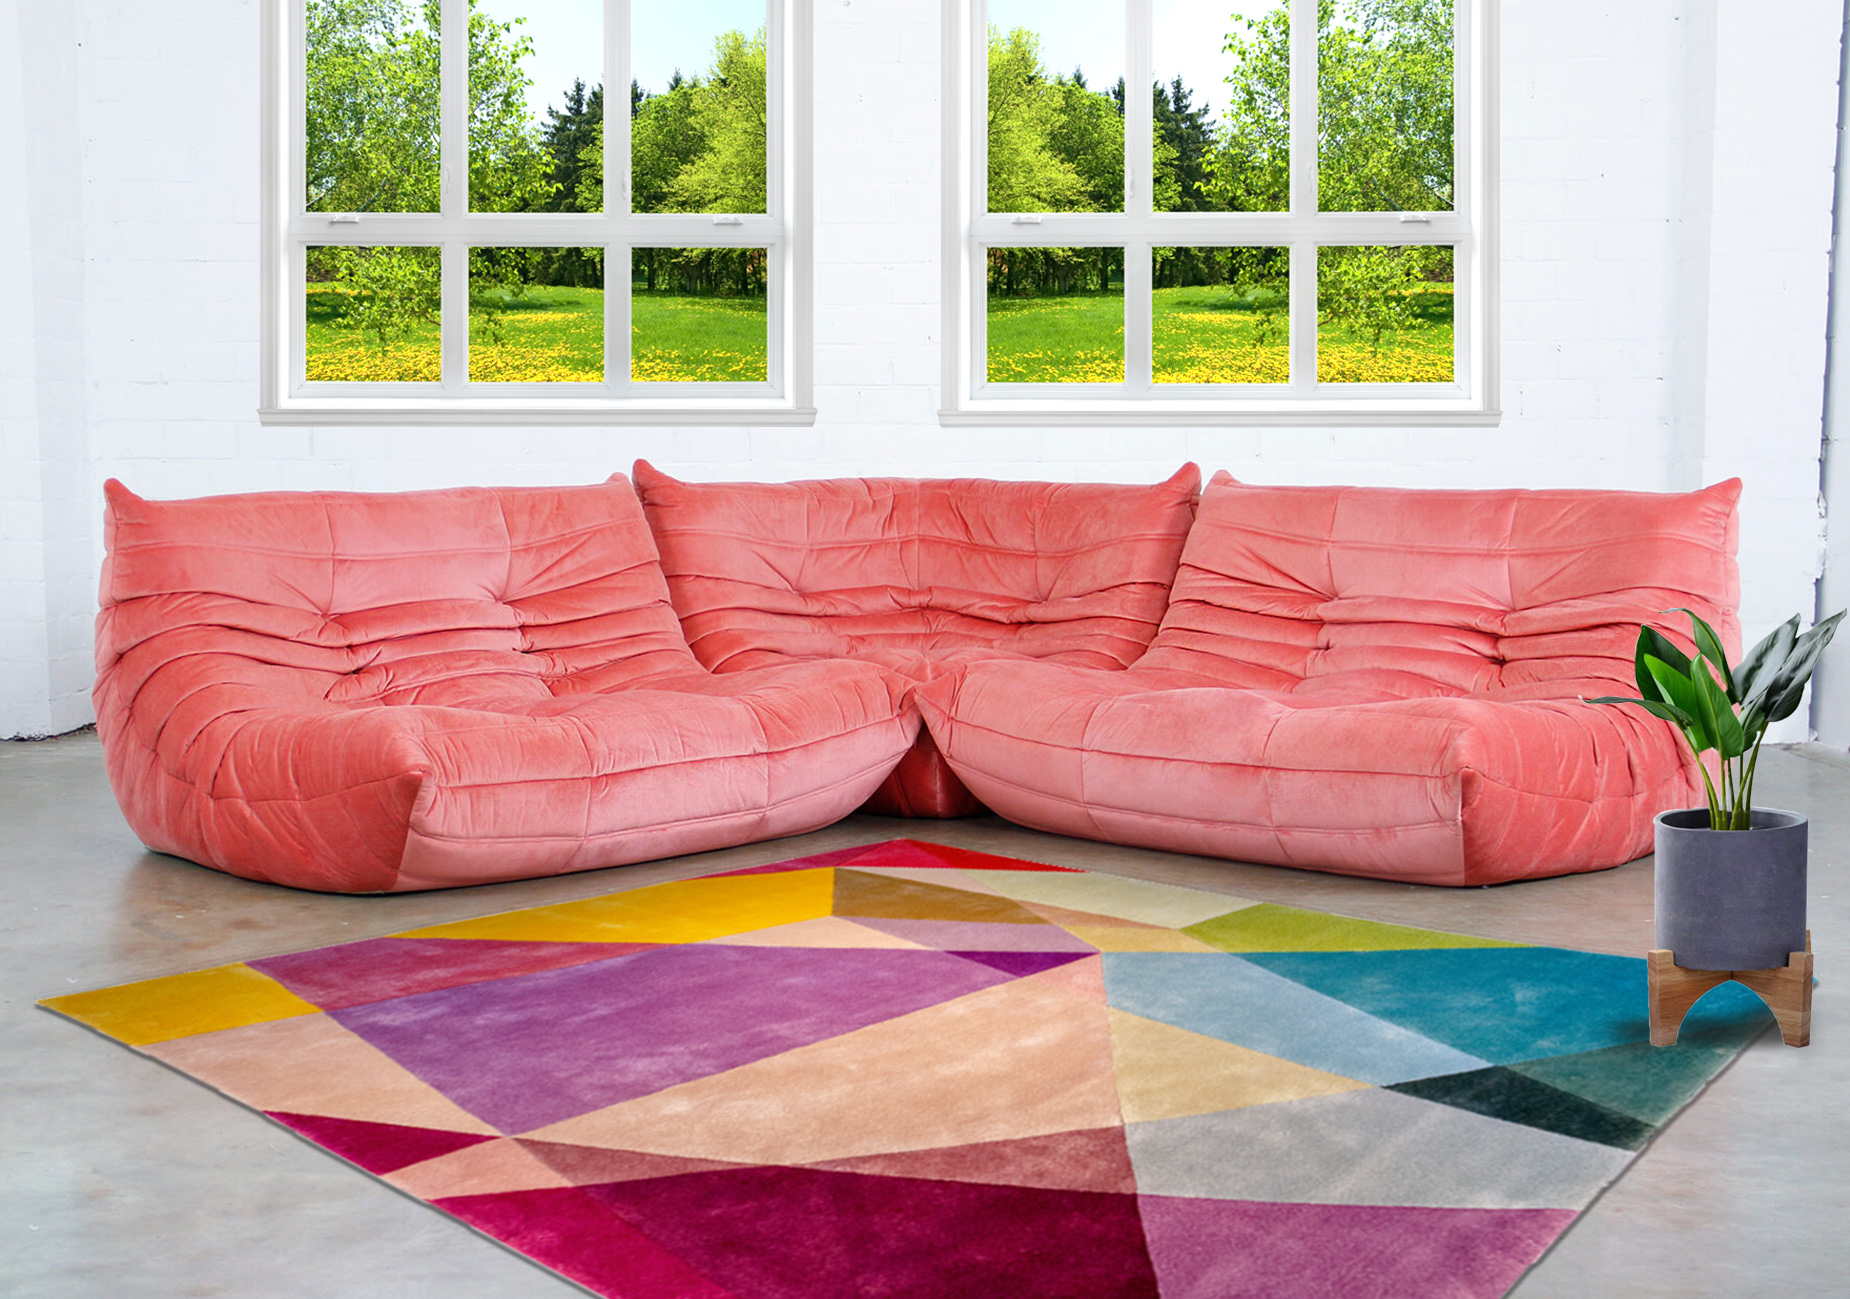 Pink Togo Sofa by Ligne Roset With Contemporary Rug by Sonya Winner